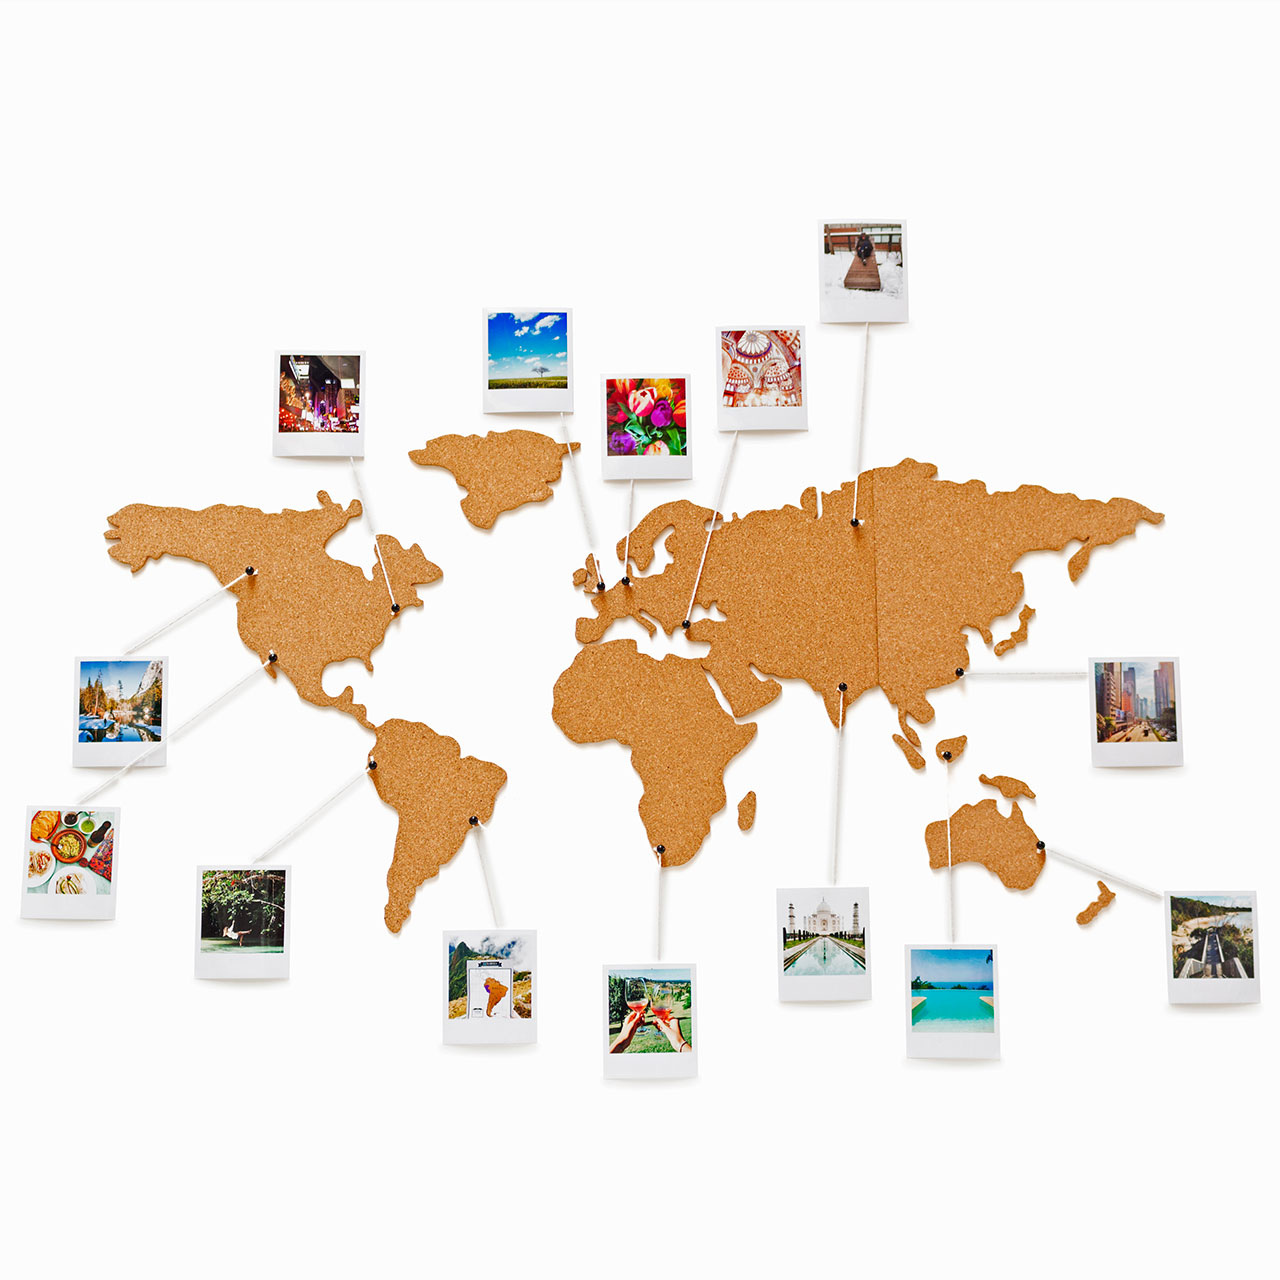 Corkboard world map – Cork Board World Travel Map